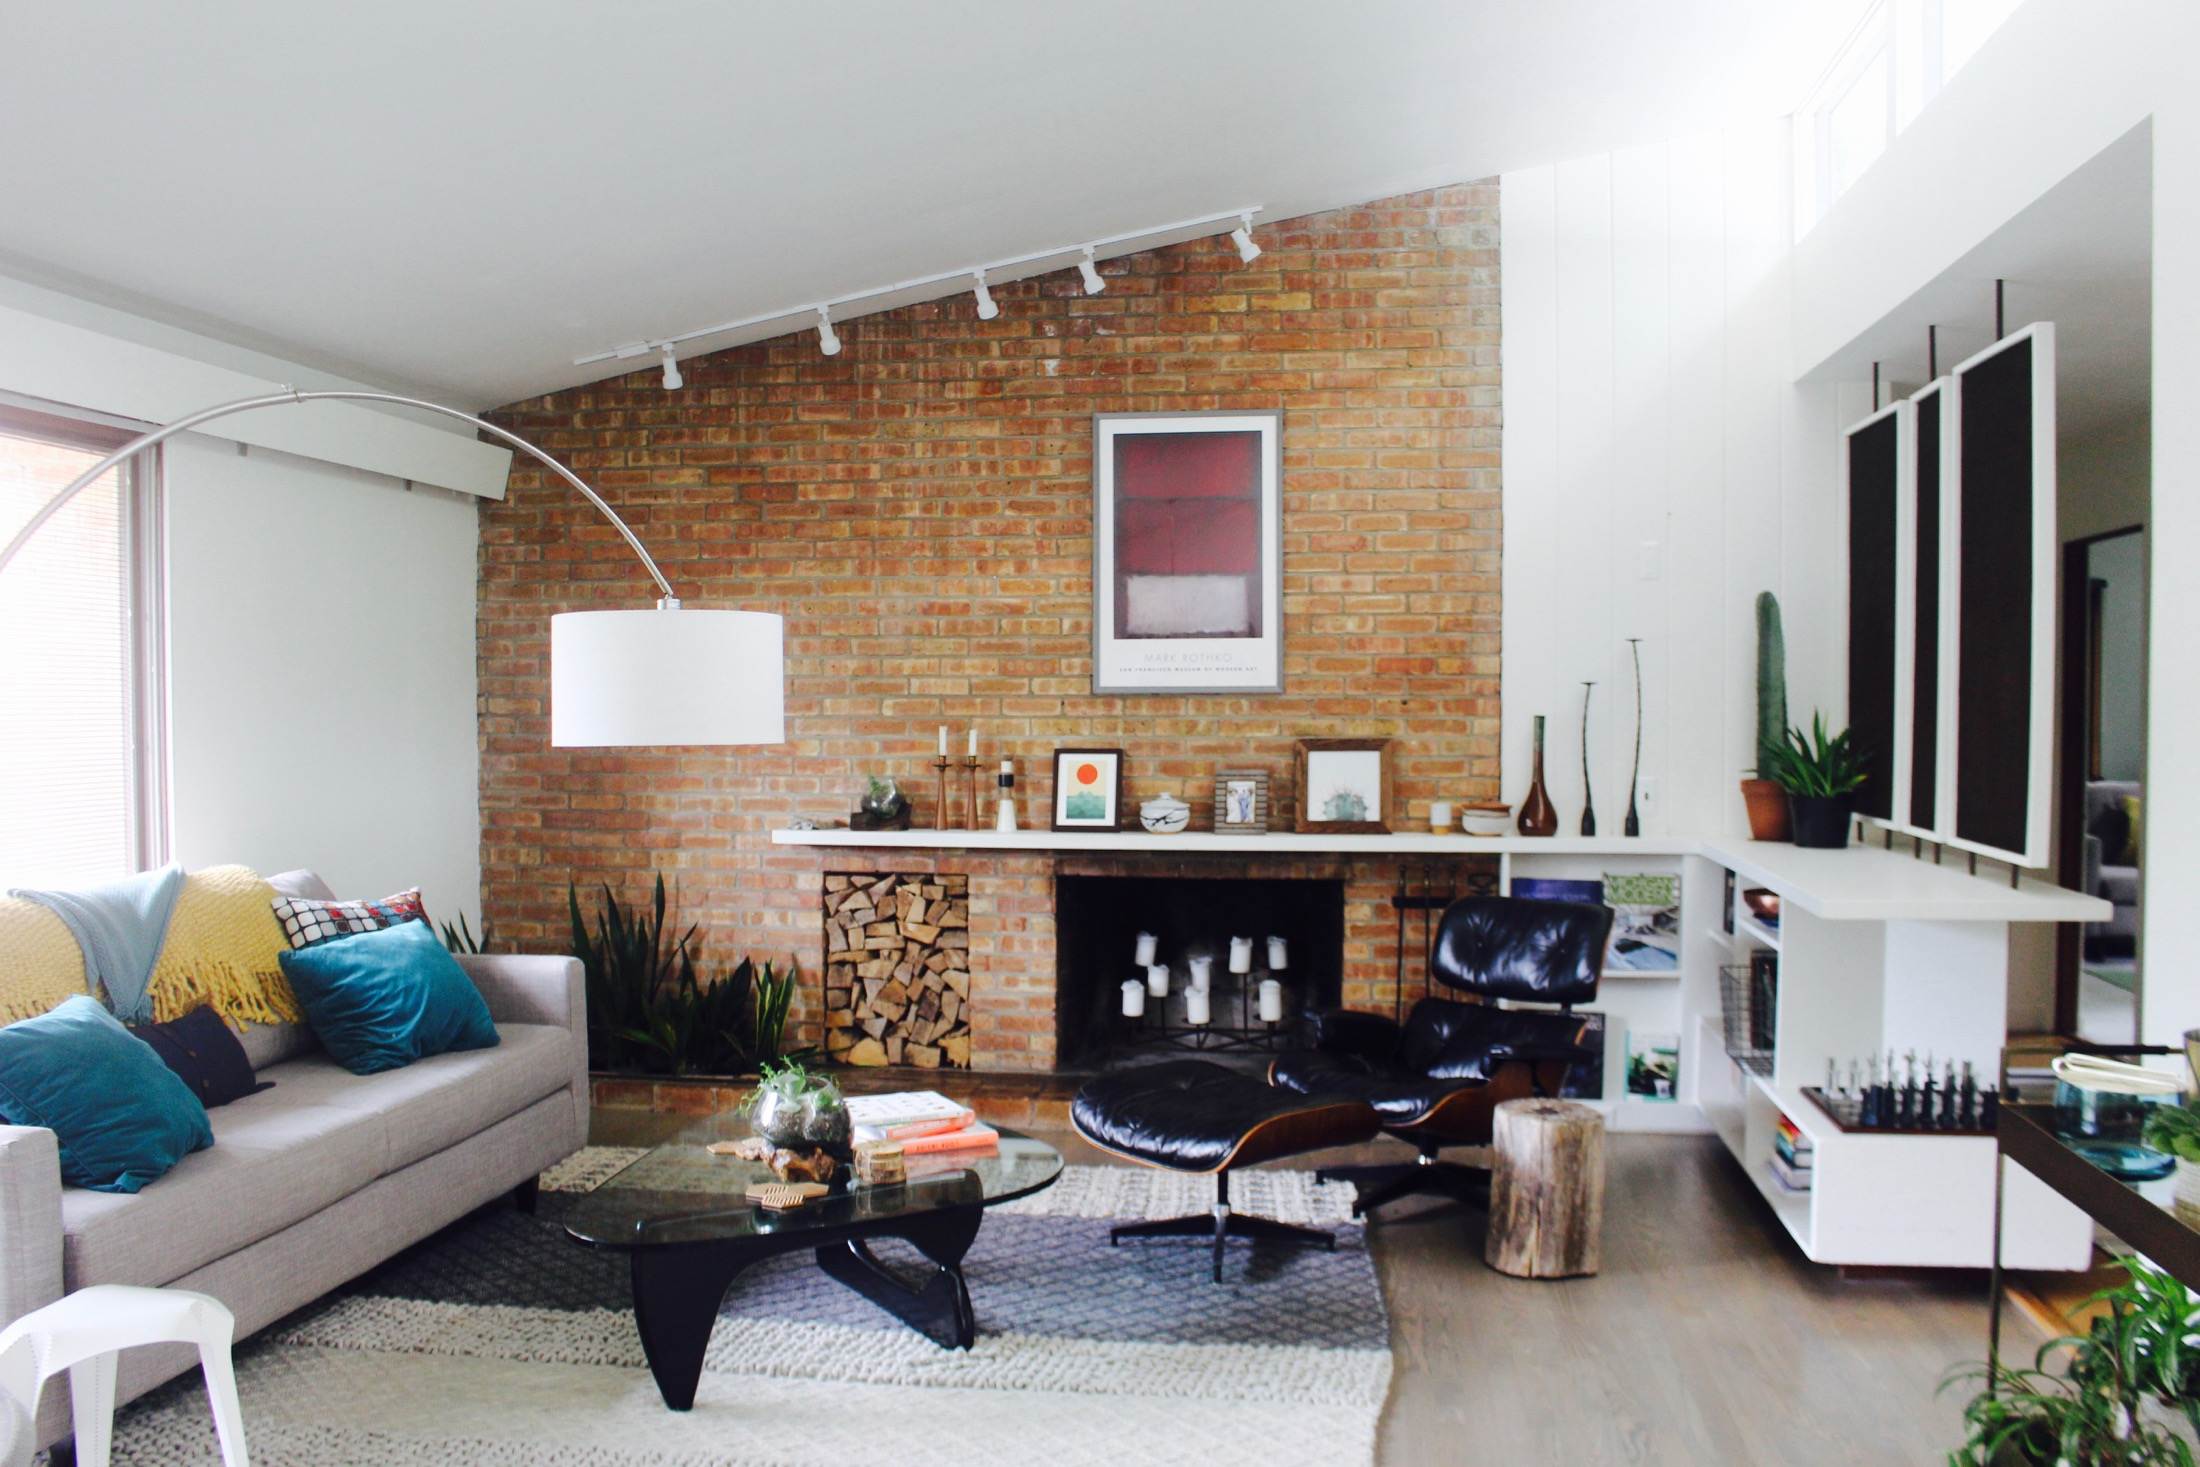 LIVING ROOM FIREPLACE AND ANGLED CEILING